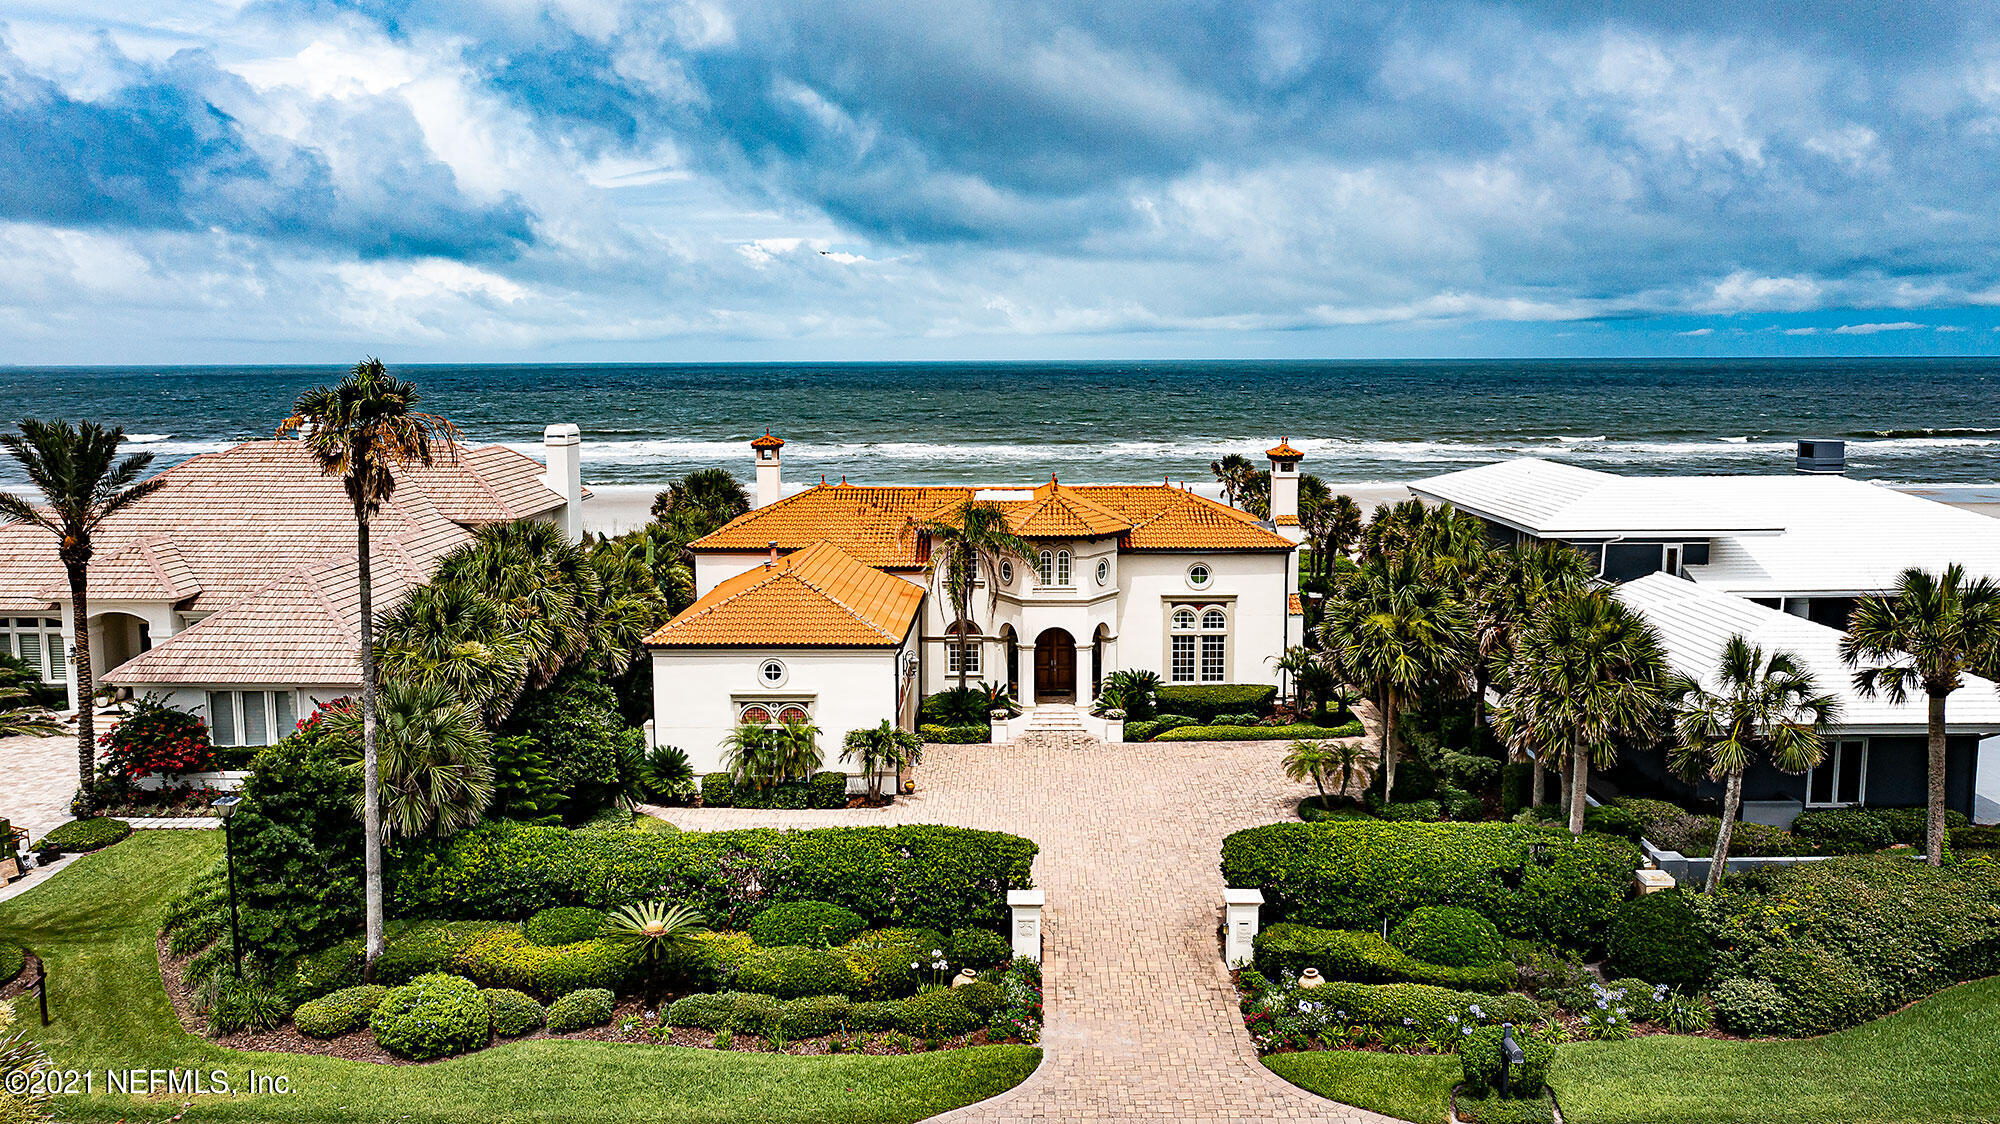 Presenting a rare find on the Ponte Vedra Beach Oceanfront. This is a lifestyle location just minutes north of the Ponte Vedra Inn & Club with the beach in your backyard and golf views in your front yard. A Palm Beach/Spanish influenced design, this home has a grand entry with two story ceilings in most shared rooms, spacious oceanfront pool, stone deck, large yard, and covered lanai with gas fireplace. Impressive craftsmanship is featured throughout the home: Beamed and coffered ceilings, custom Cypress paneling and detailed finishes. The eat-in kitchen has custom cabinetry, built-in coffee bar, buffet and large center island. Enjoy views from the first floor oceanfront owner's suite. Find four bedrooms plus a flex room on the 2nd floor. An unsurpassed opportunity in an impeccable setting